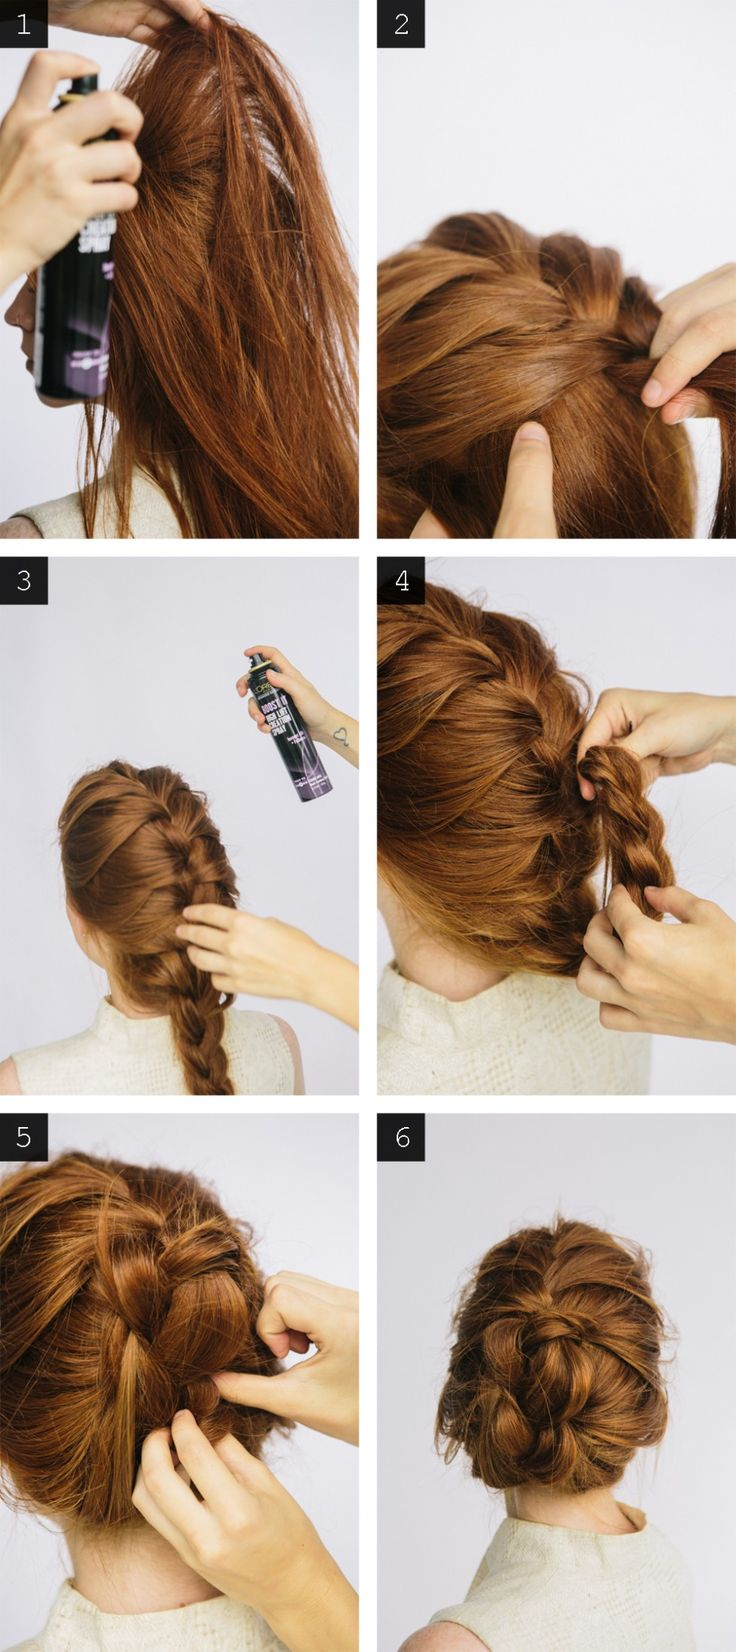 How-To: Braided Bun with L'Oreal Paris Advanced Hairstyle @hairstyledotcom